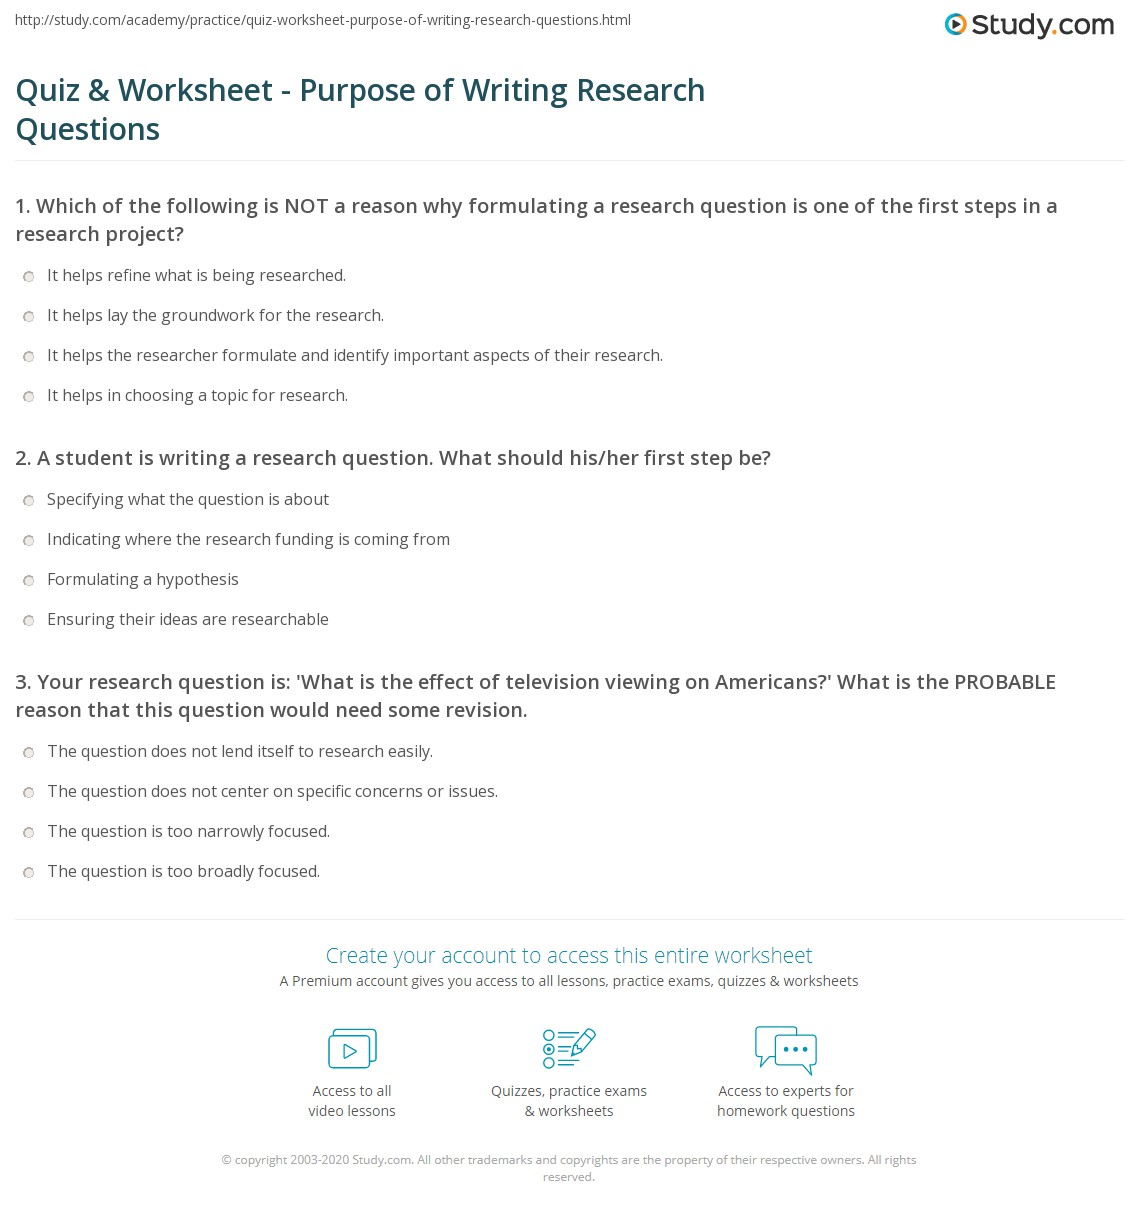 Printables Career Research Worksheet career research worksheet vintagegrn quiz purpose of writing questions study com